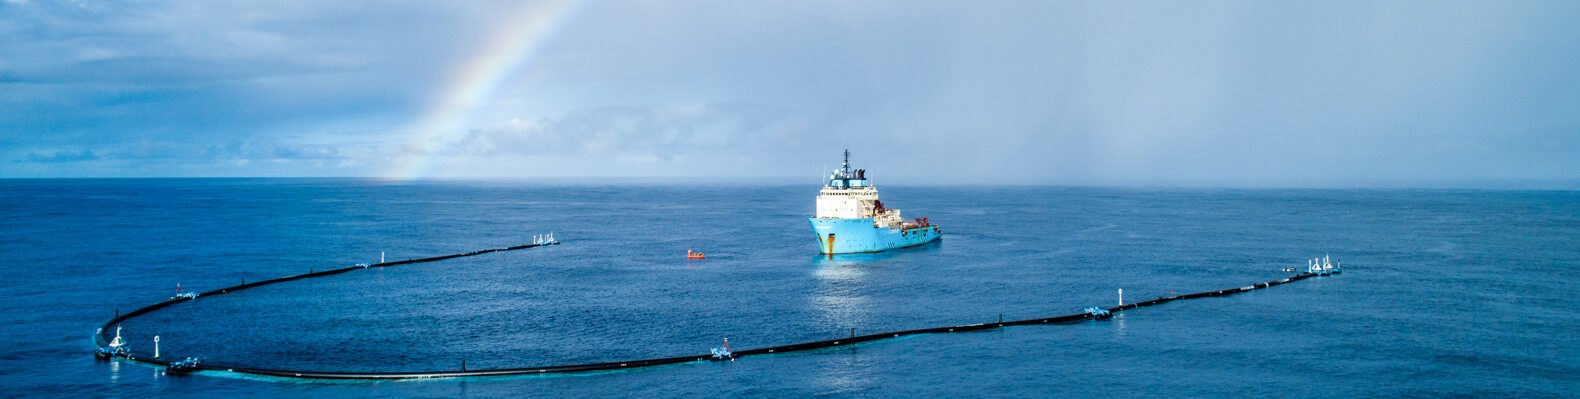 Ocean Cleanup device being pulled by boat on ocean